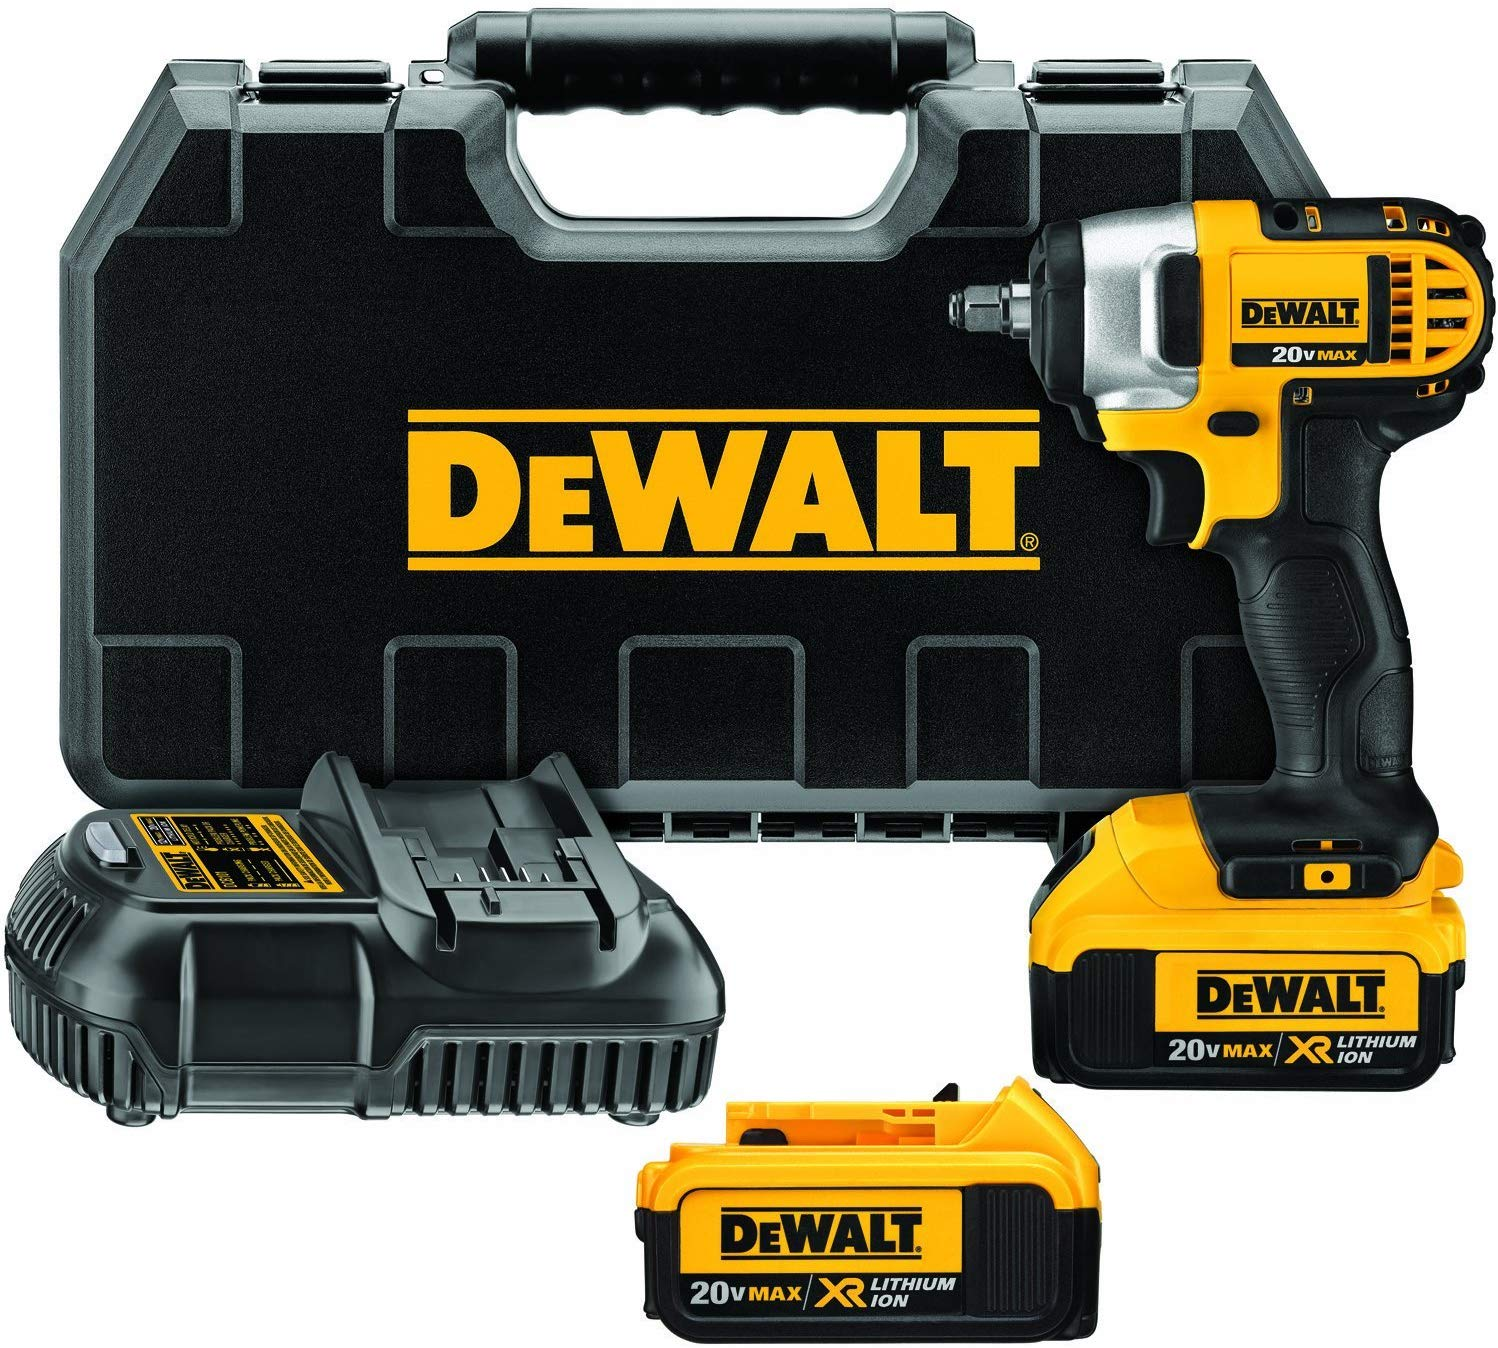 DEWALT DCF883M2 Cordless Impact Wrench Kit